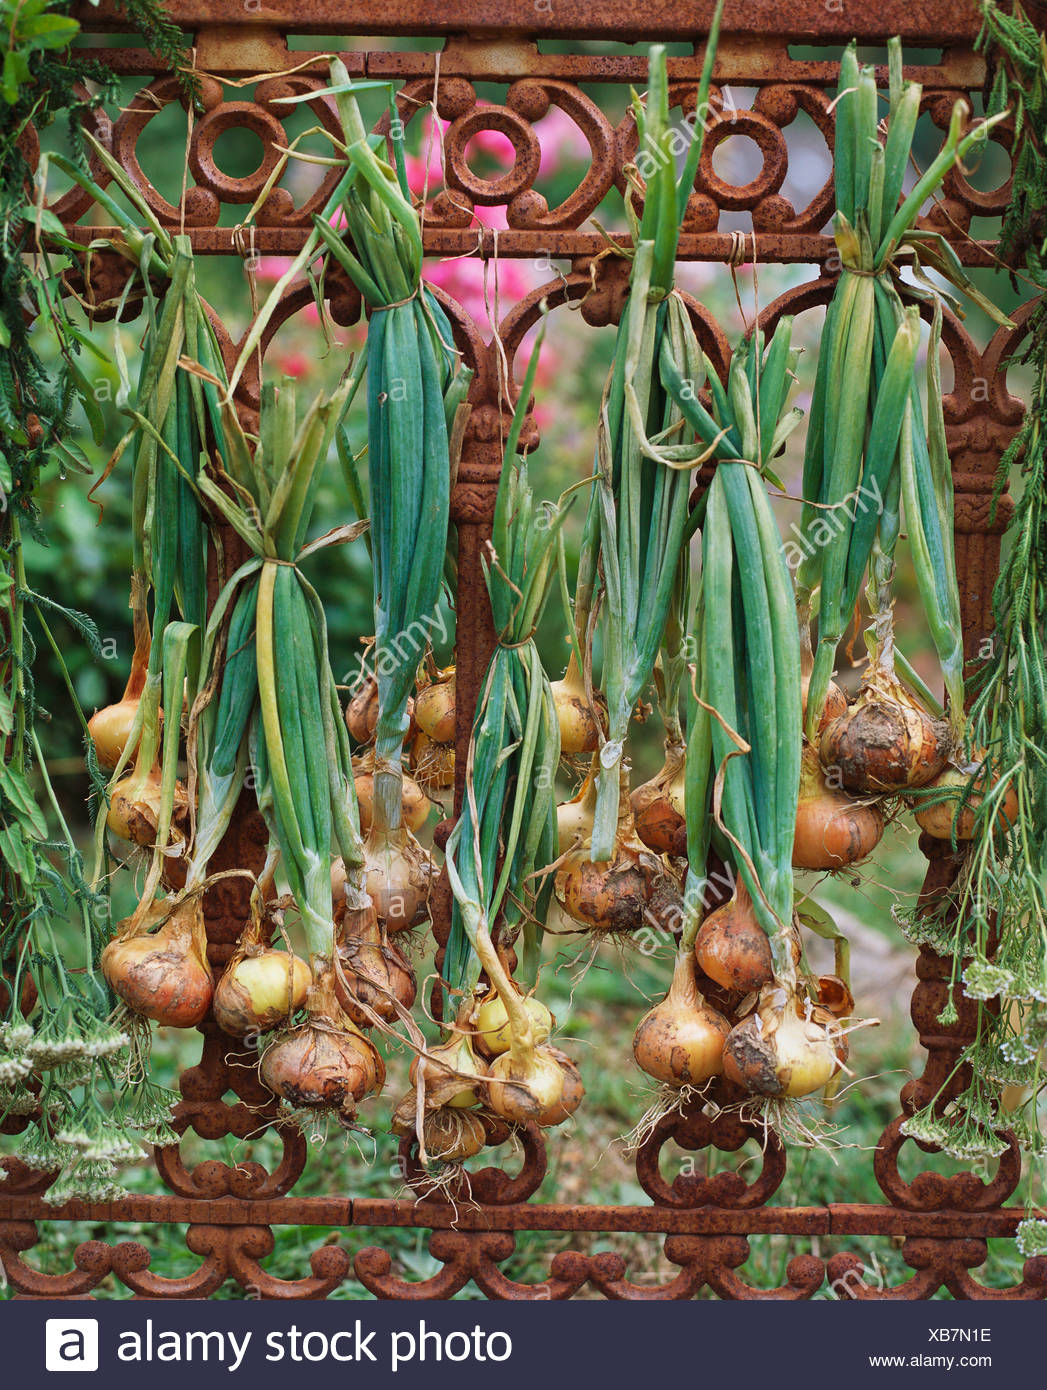 How to dry the onions